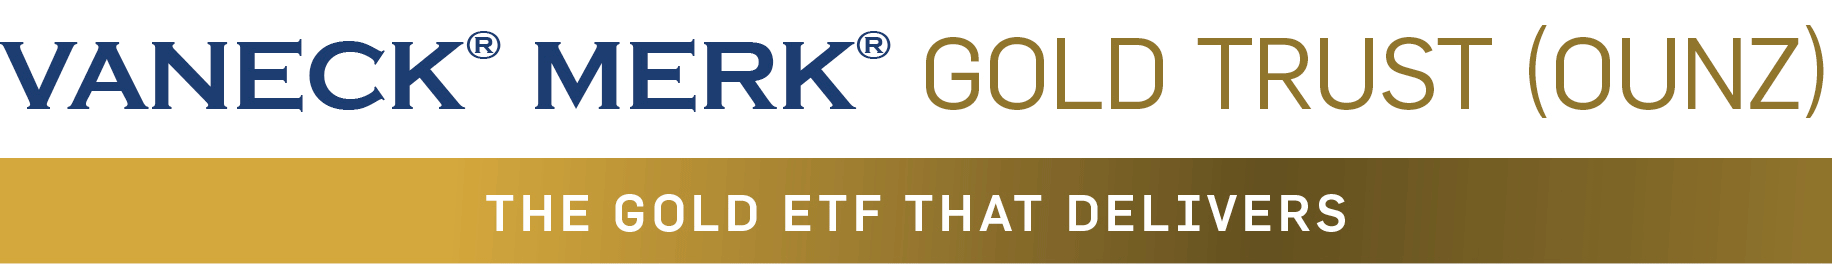 VanEck Merk Gold Trust (OUNZ) - Frequently Asked Questions